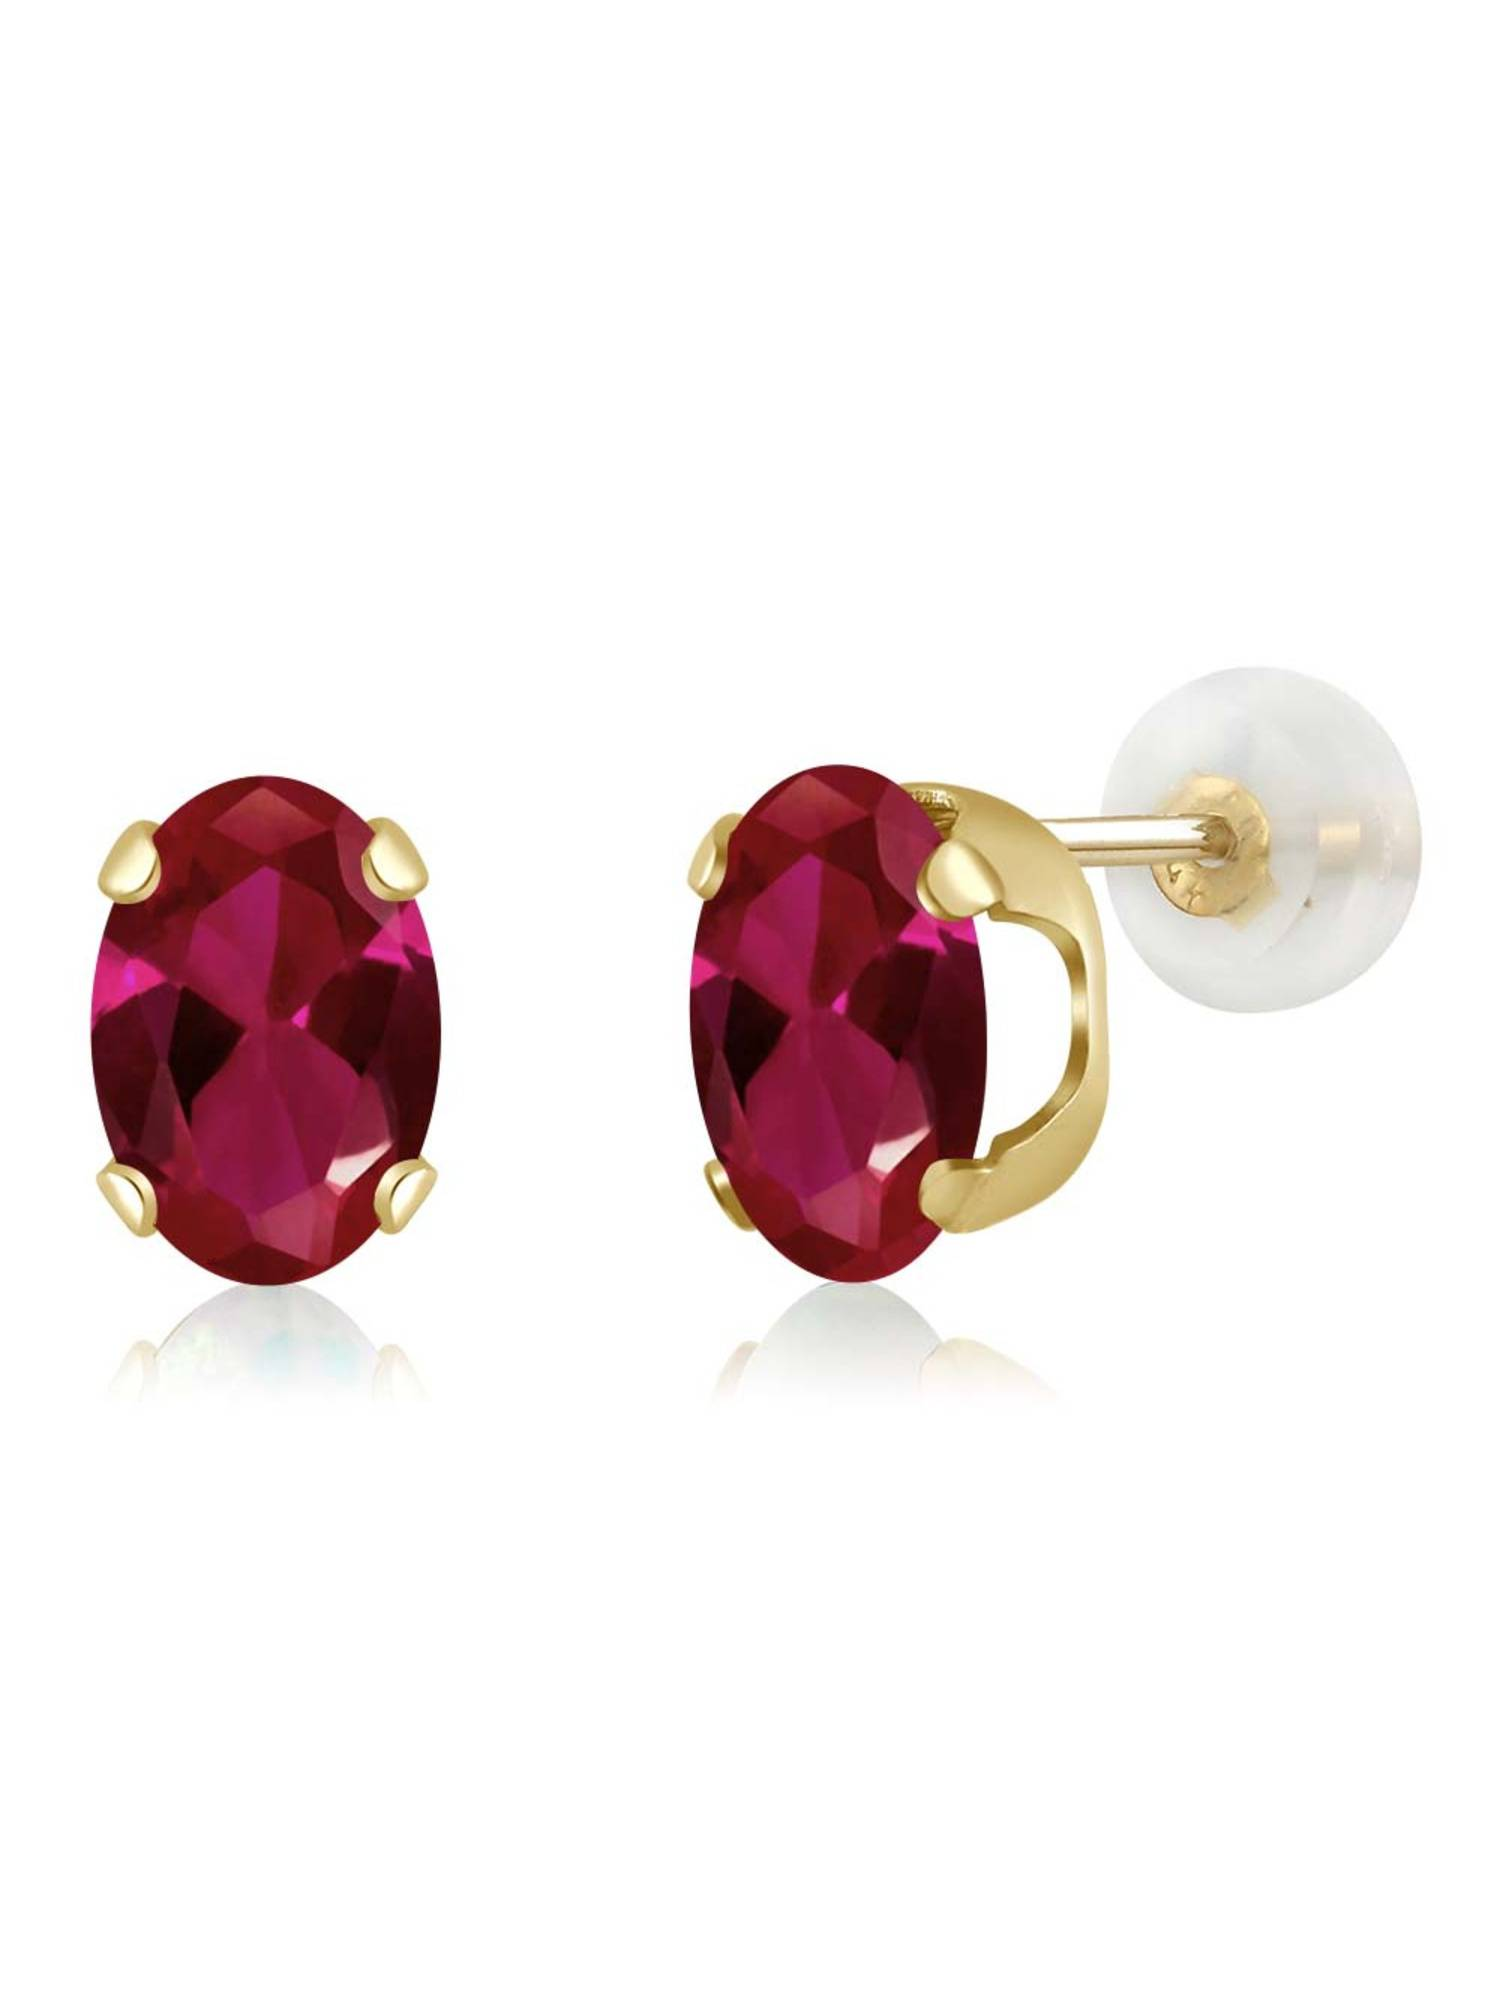 Gem Stone King 1.80 Ct Oval 7x5mm Red Created Ruby 925 Sterling Silver Stud Earrings